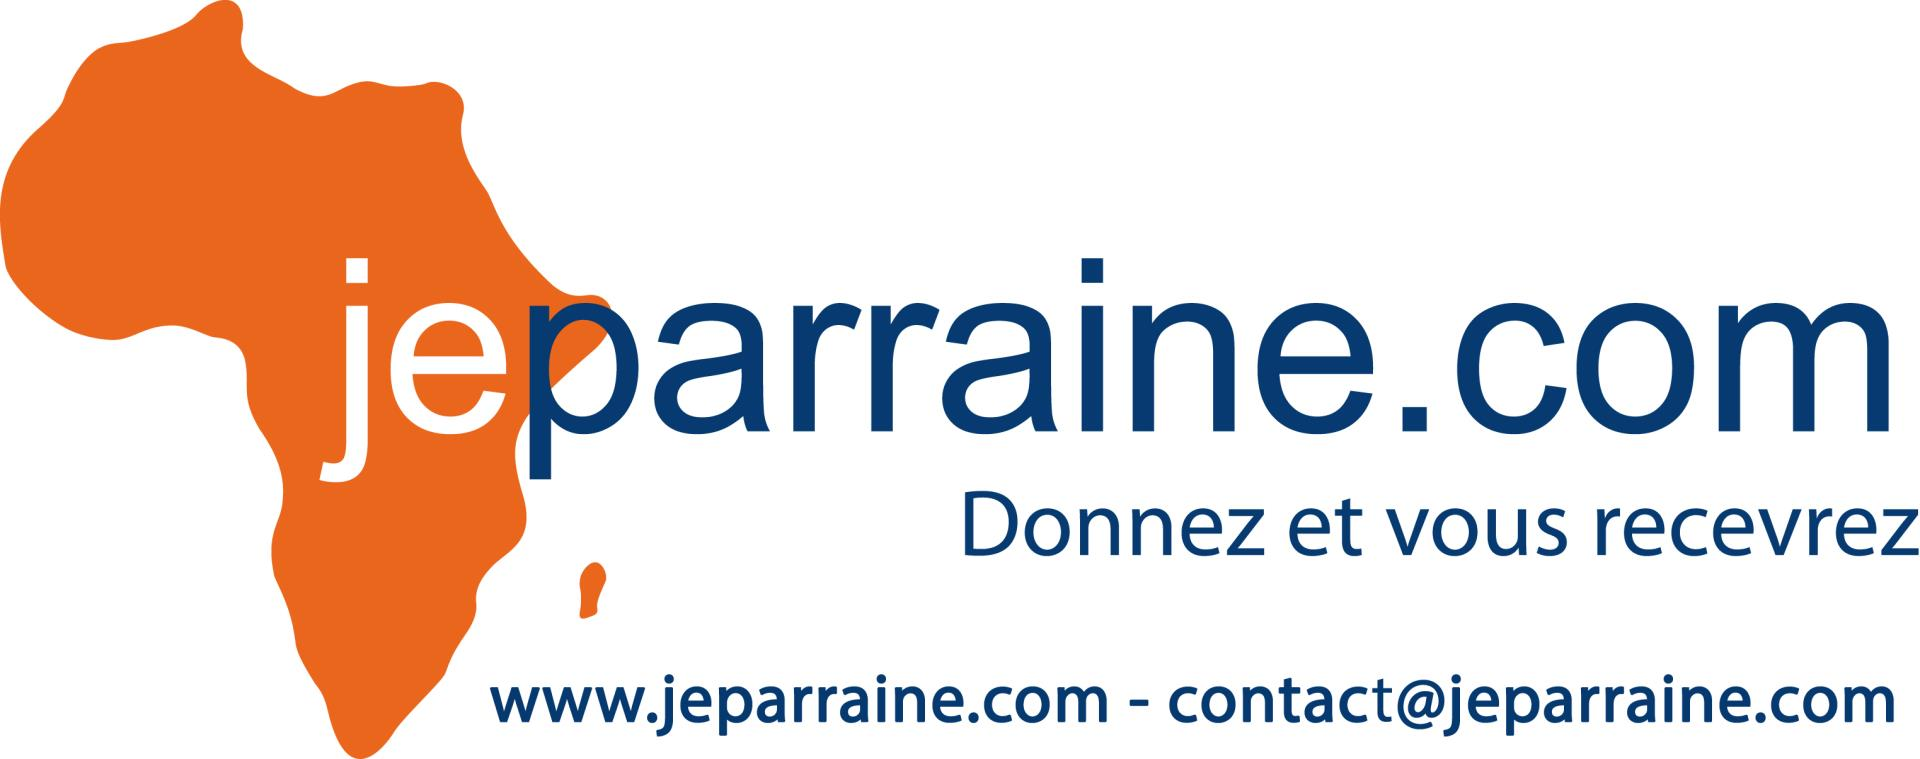 Association ARM - JE PARRAINE